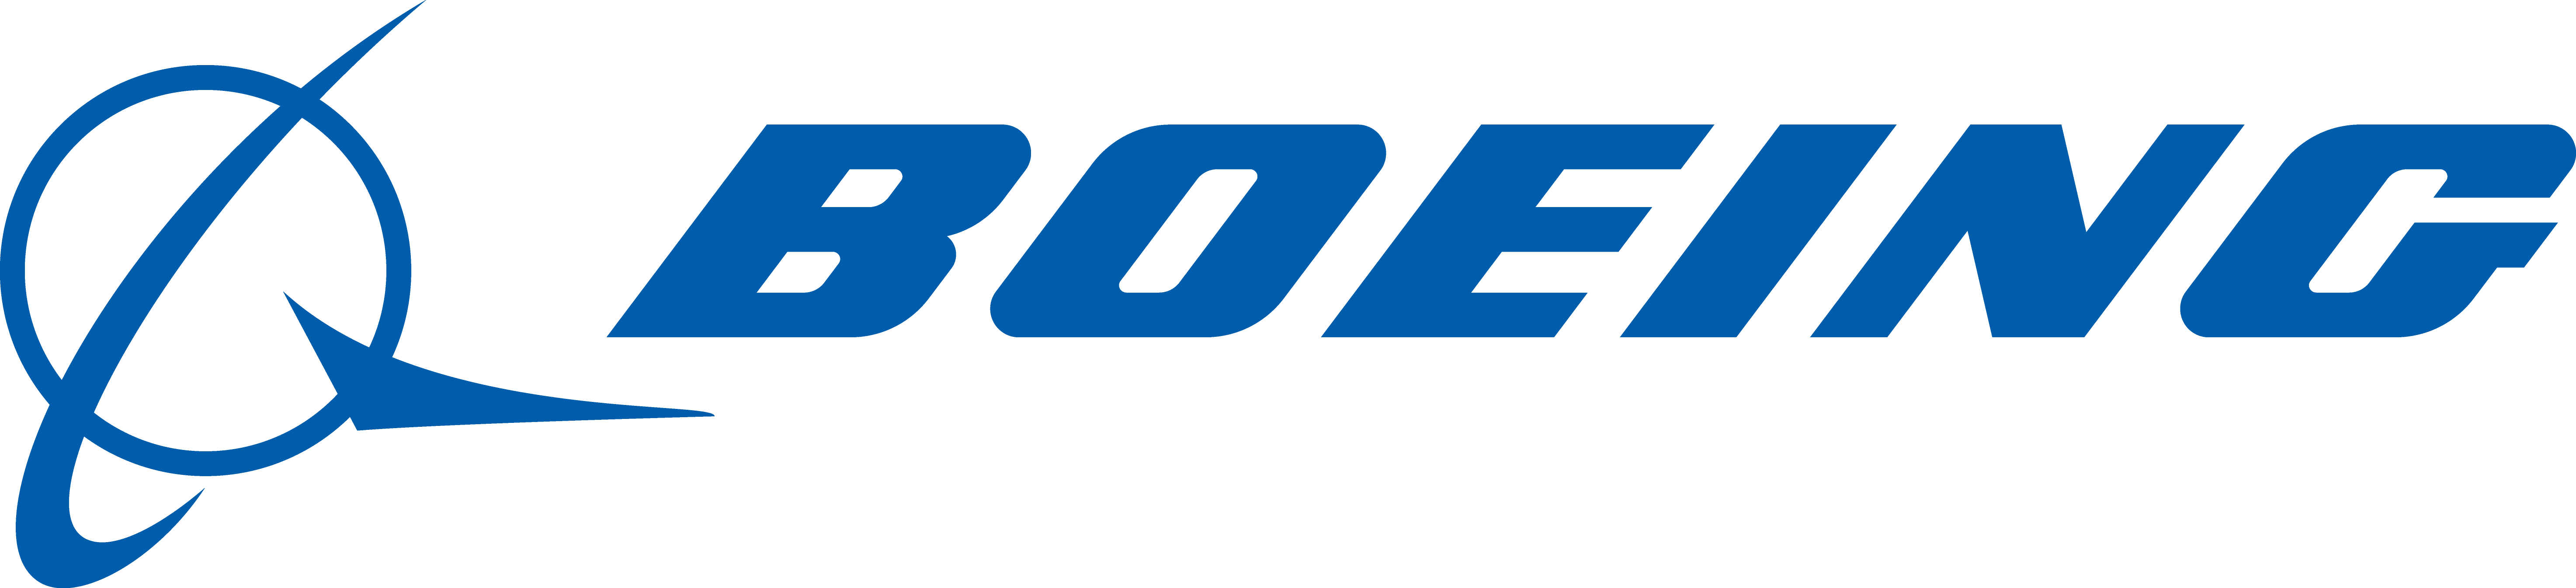 Dr. Rick Speaks at Boeing